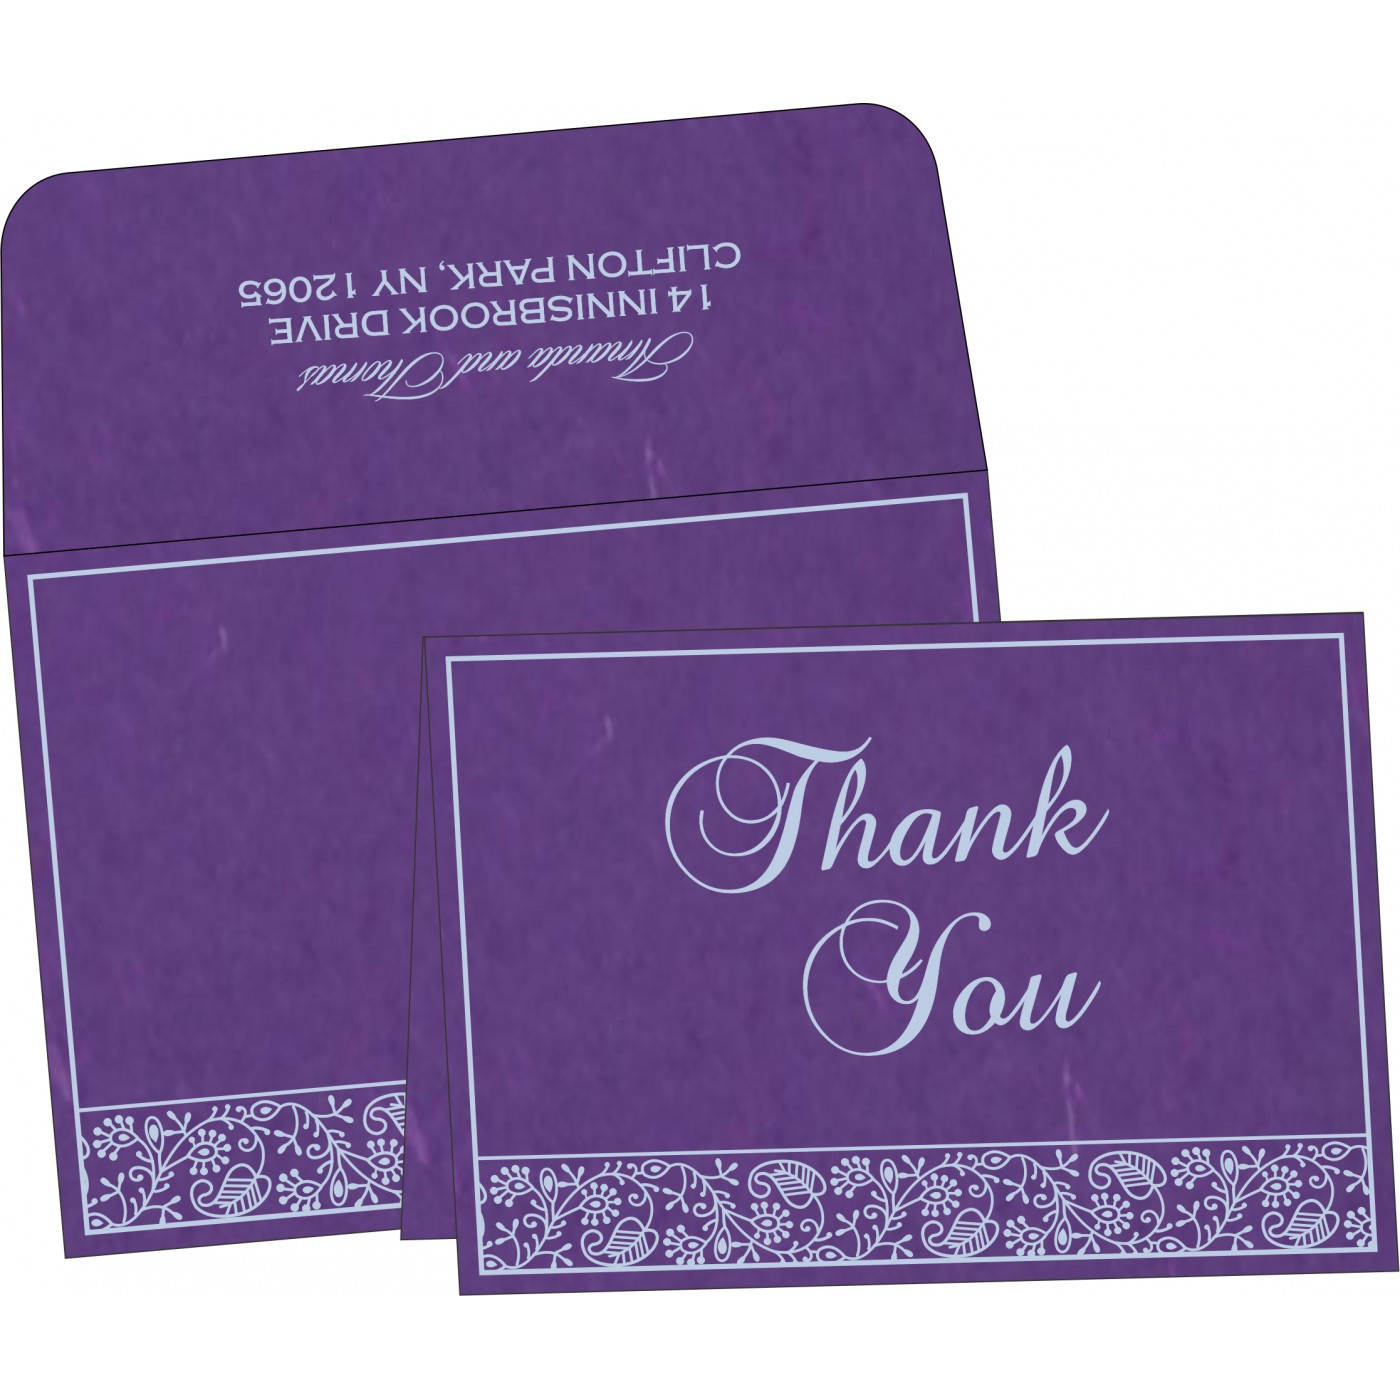 Thank You Cards - TYC-8215G